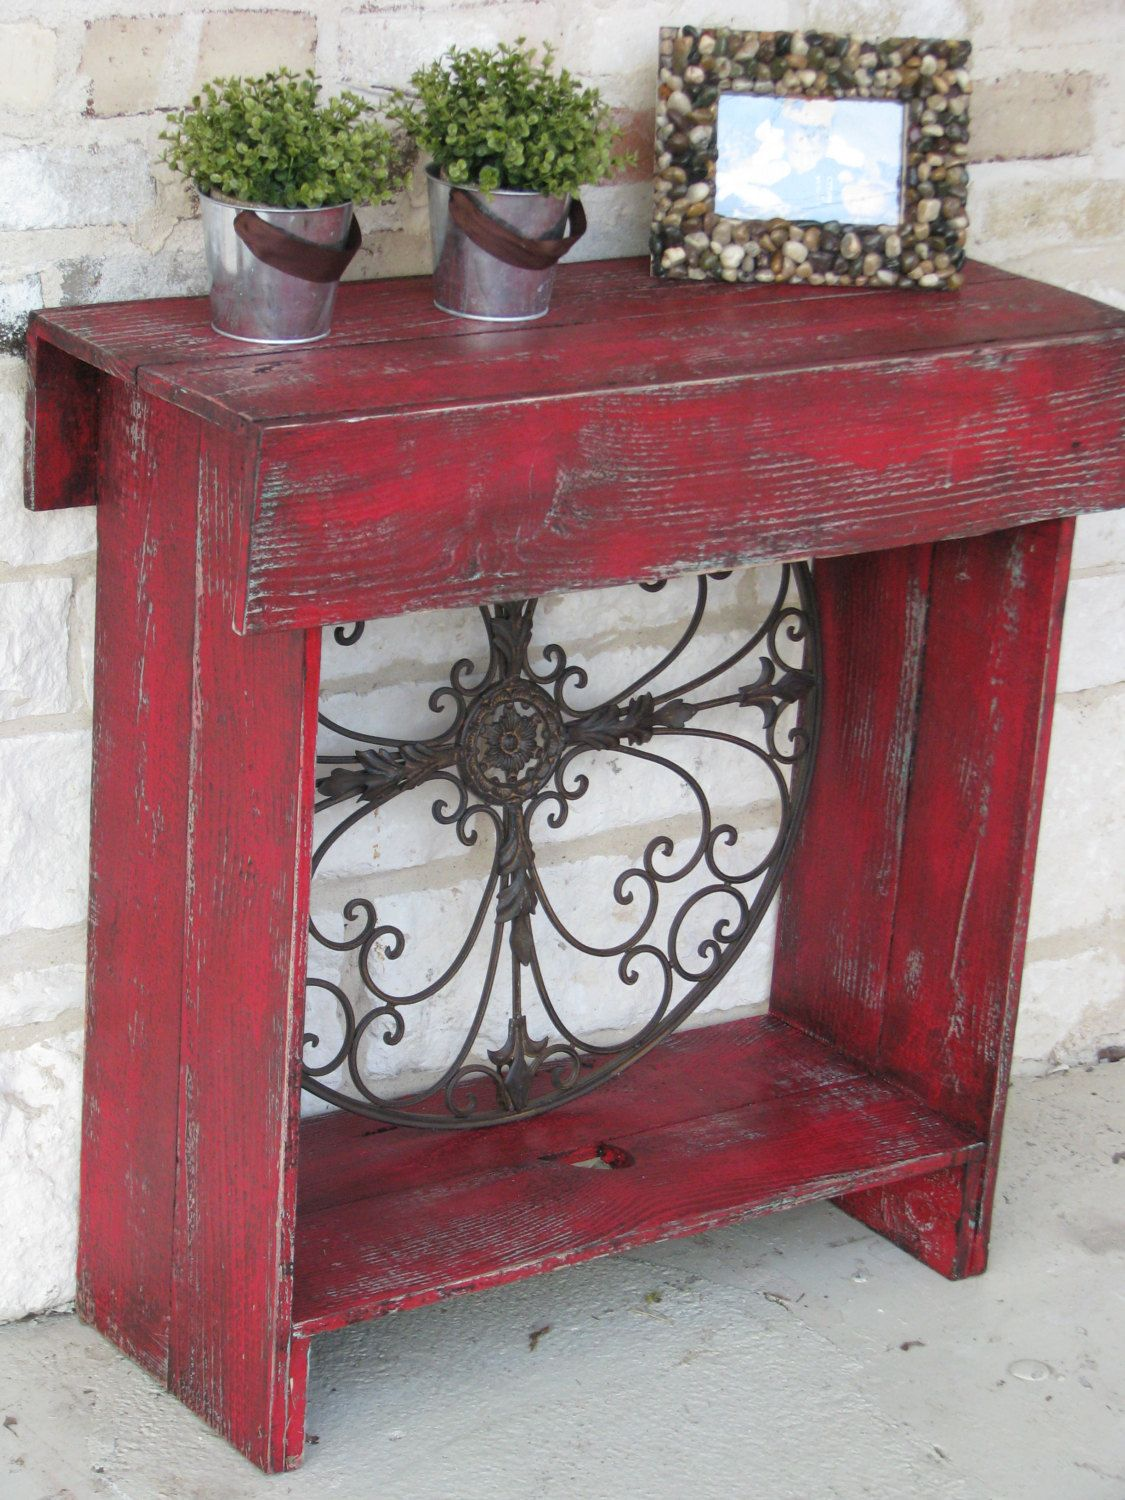 Thisss Is What I Have In Mind Rustic Distressed Wall Console Table By Rusticexquisitedsgn 175 00